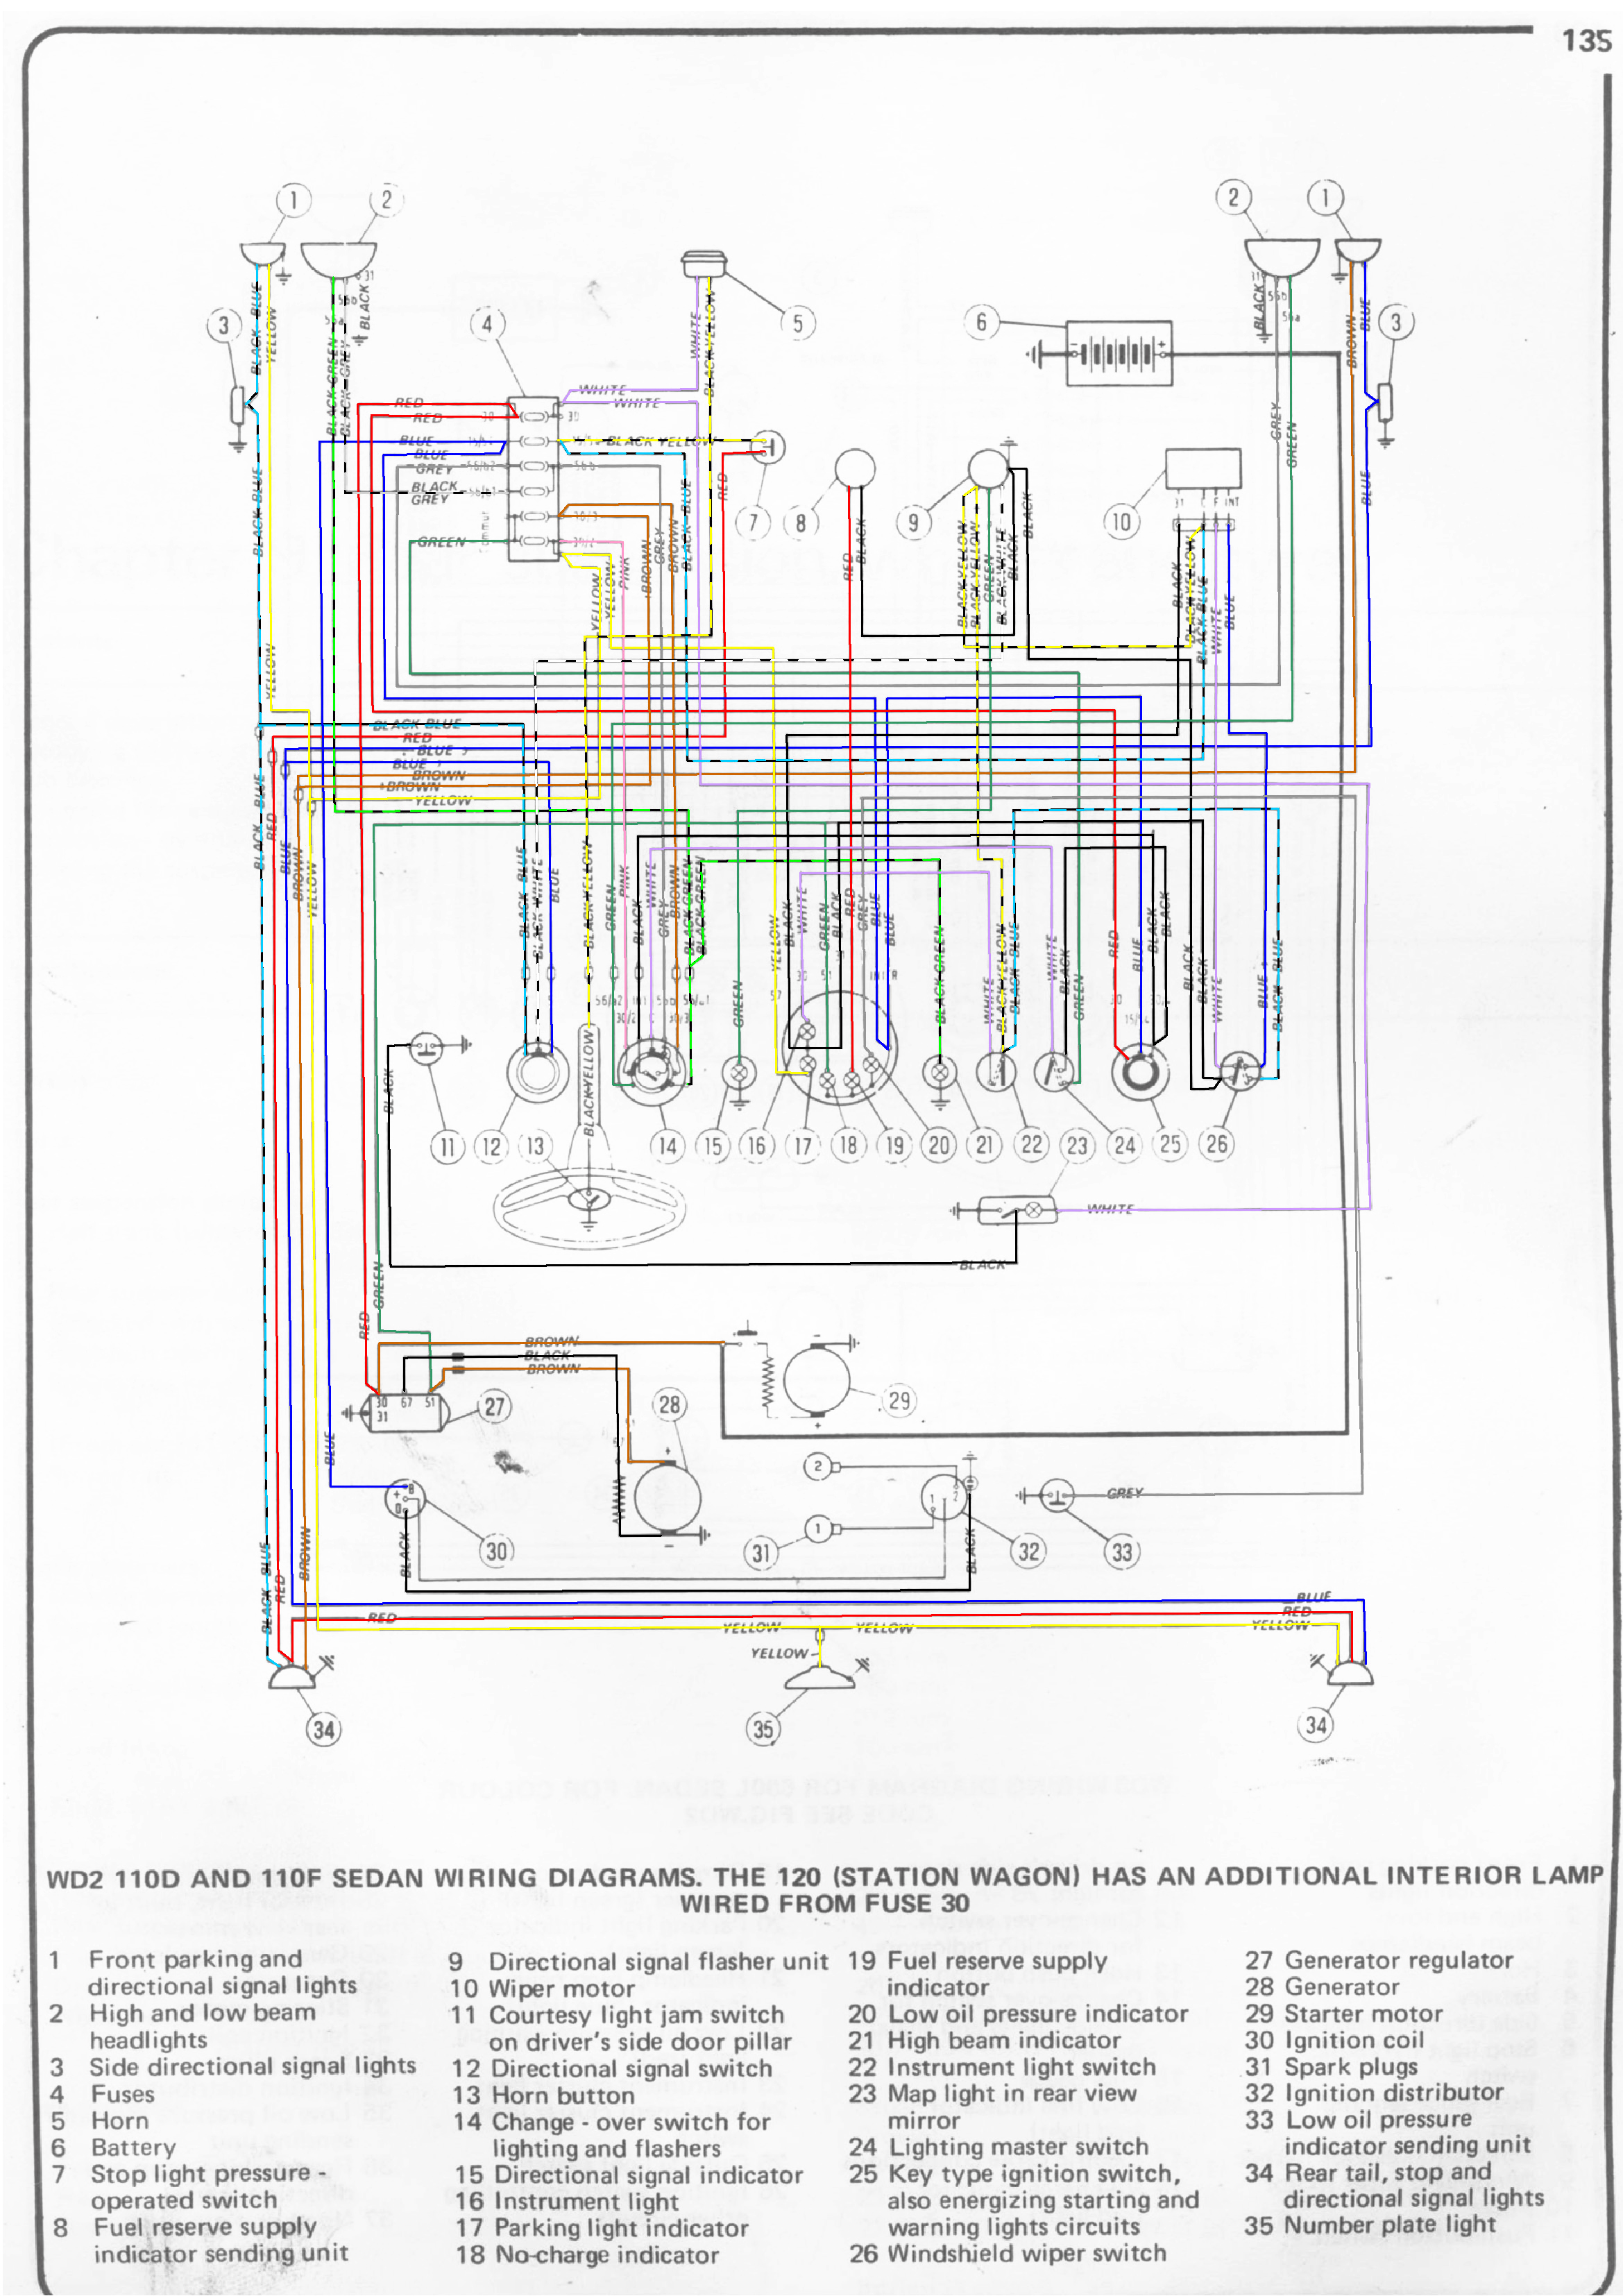 Fiat Seicento Wiring Diagram Wiring Library Vanesaco